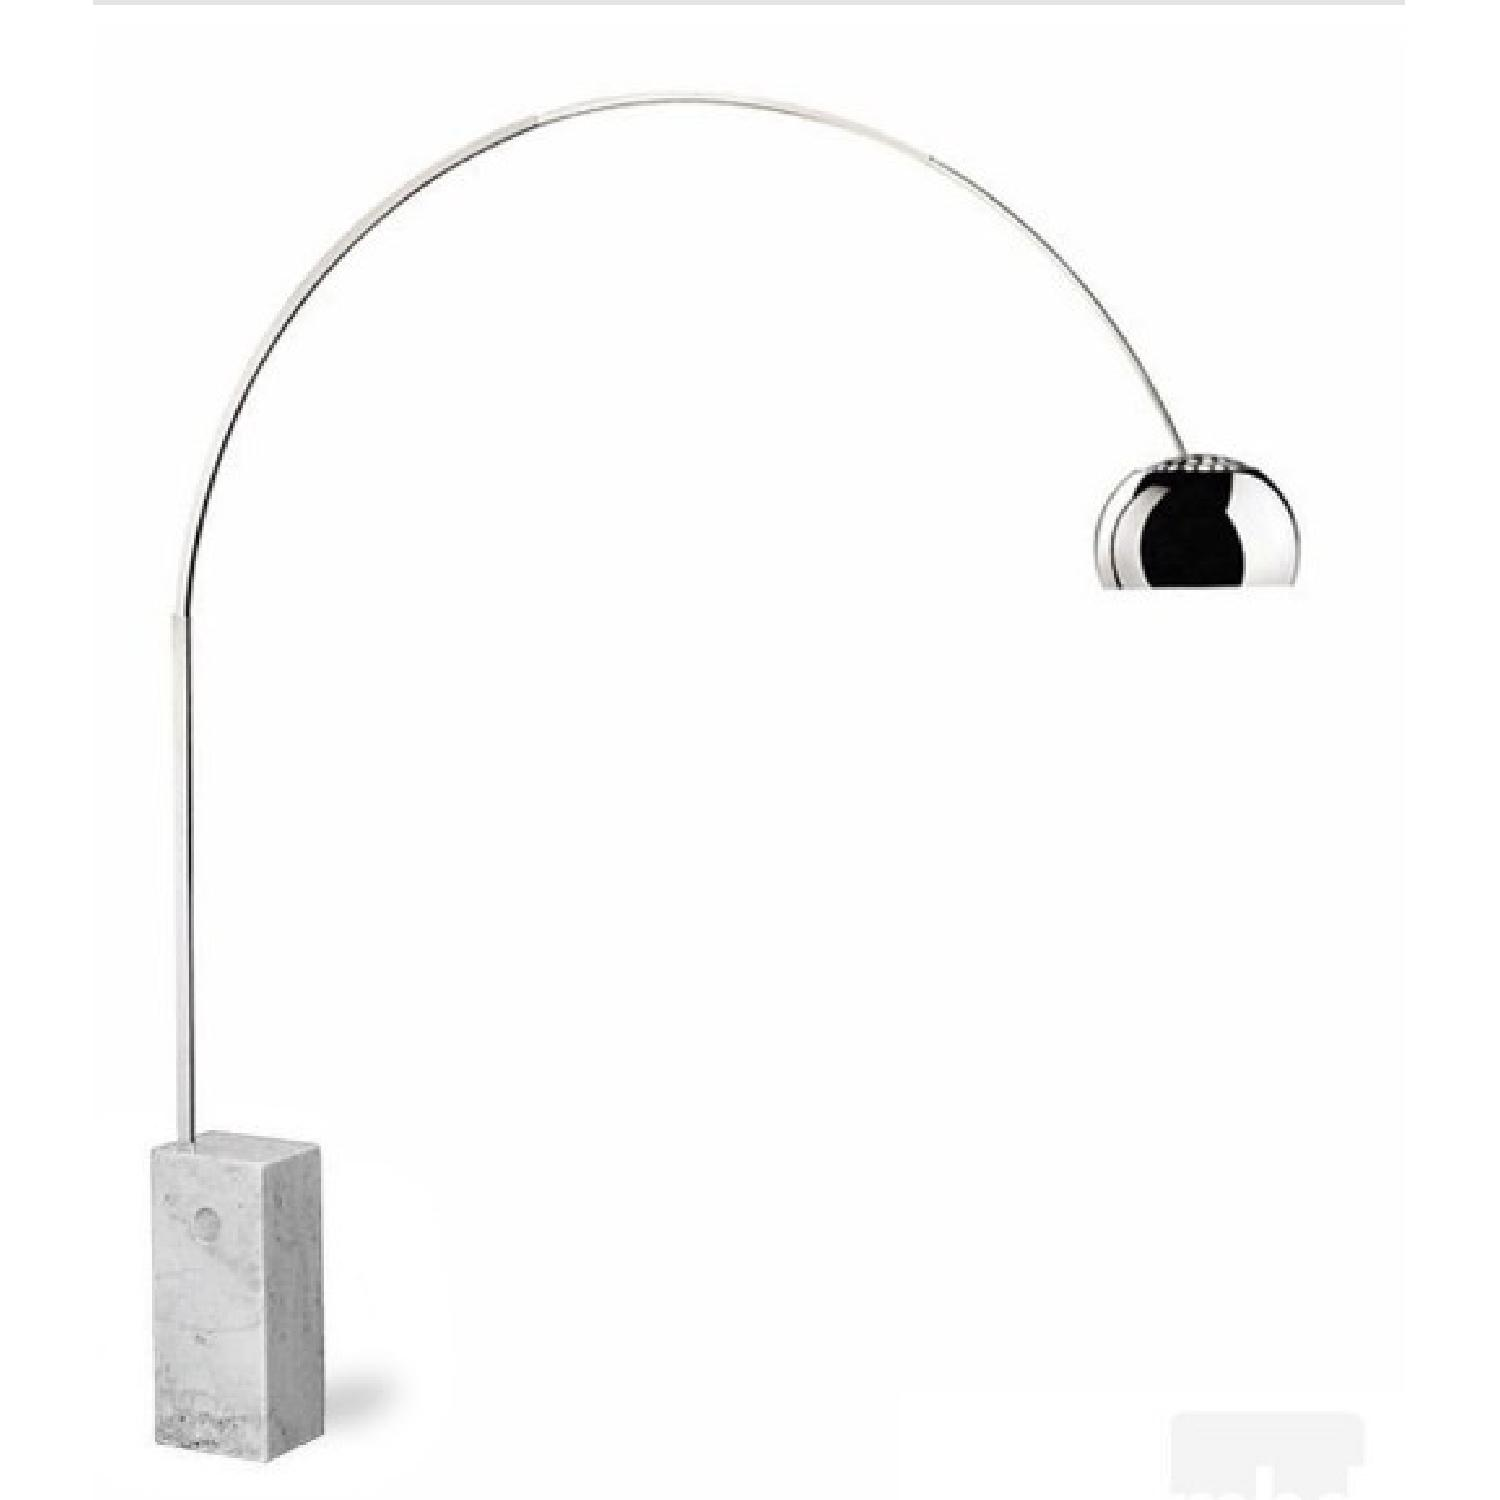 Arco lamp Replica in White